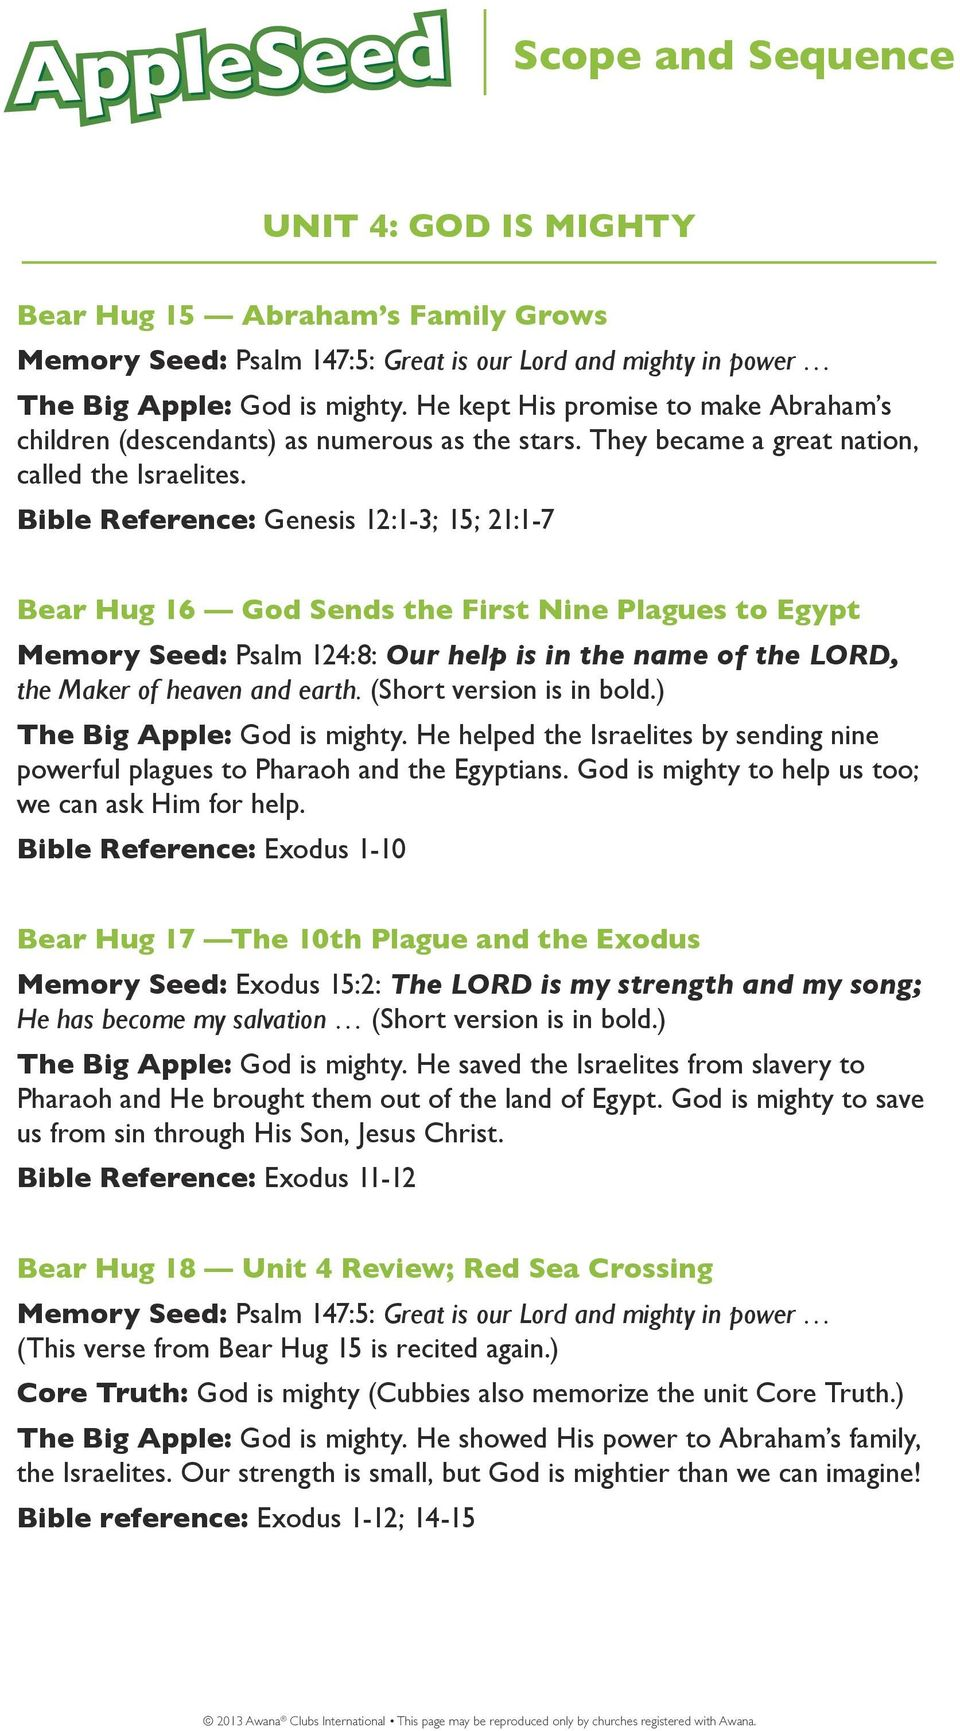 Bible Reference: Genesis 12:1-3; 15; 21:1-7 Bear Hug 16 God Sends the First Nine Plagues to Egypt Memory Seed: Psalm 124:8: Our help is in the name of the LORD, the Maker of heaven and earth.